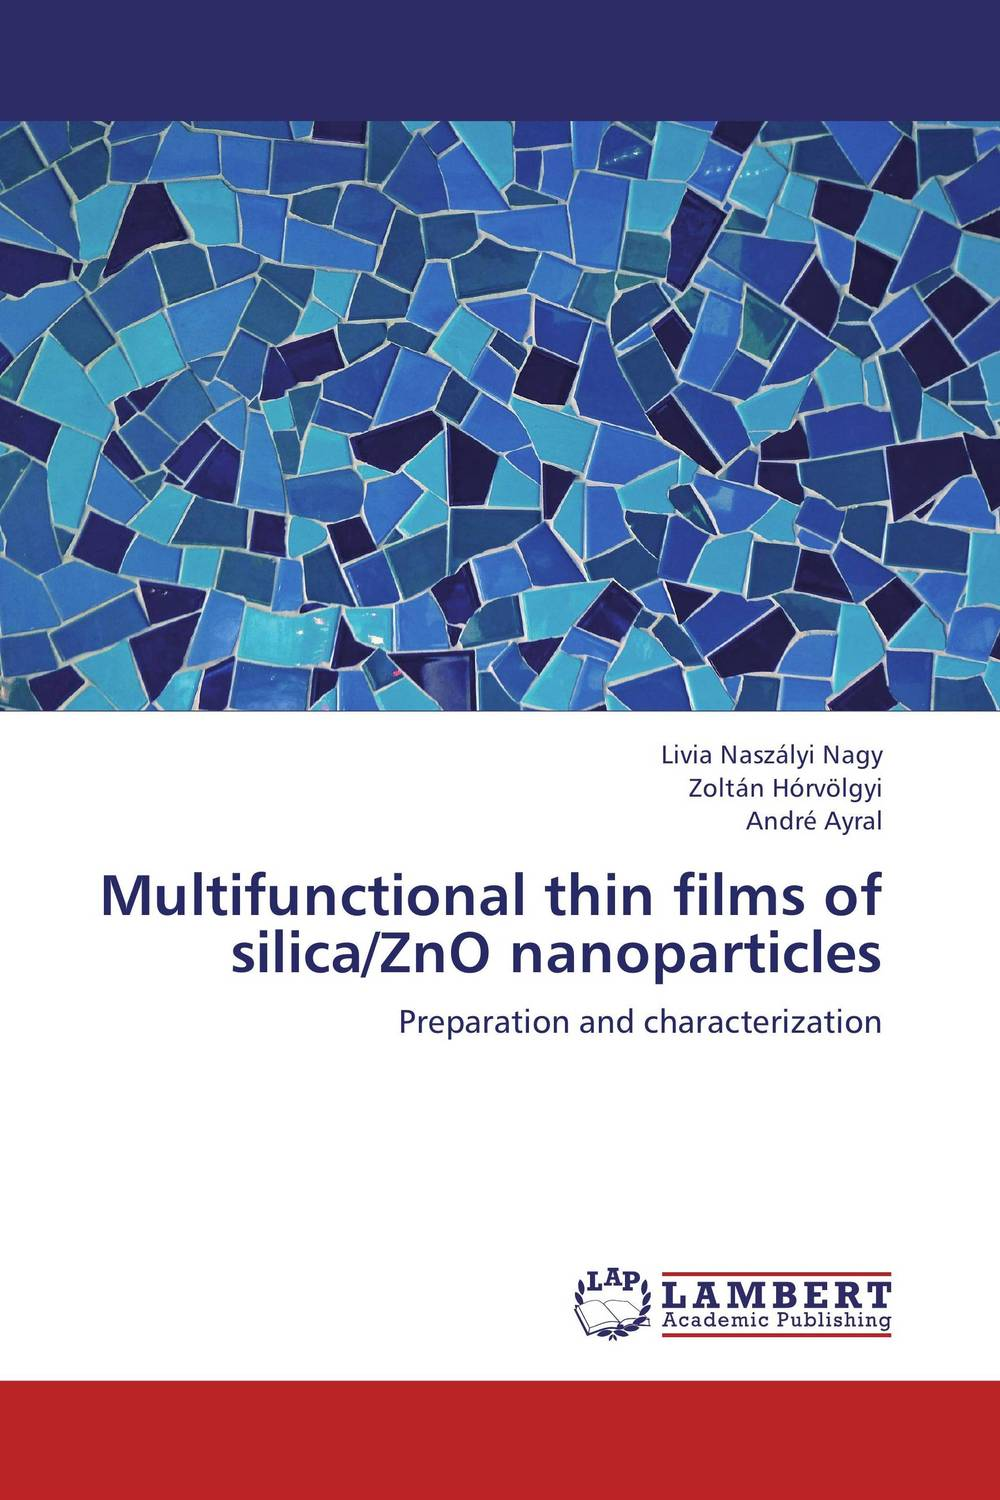 Multifunctional thin films of silica/ZnO nanoparticles a novel separation technique using hydrotropes